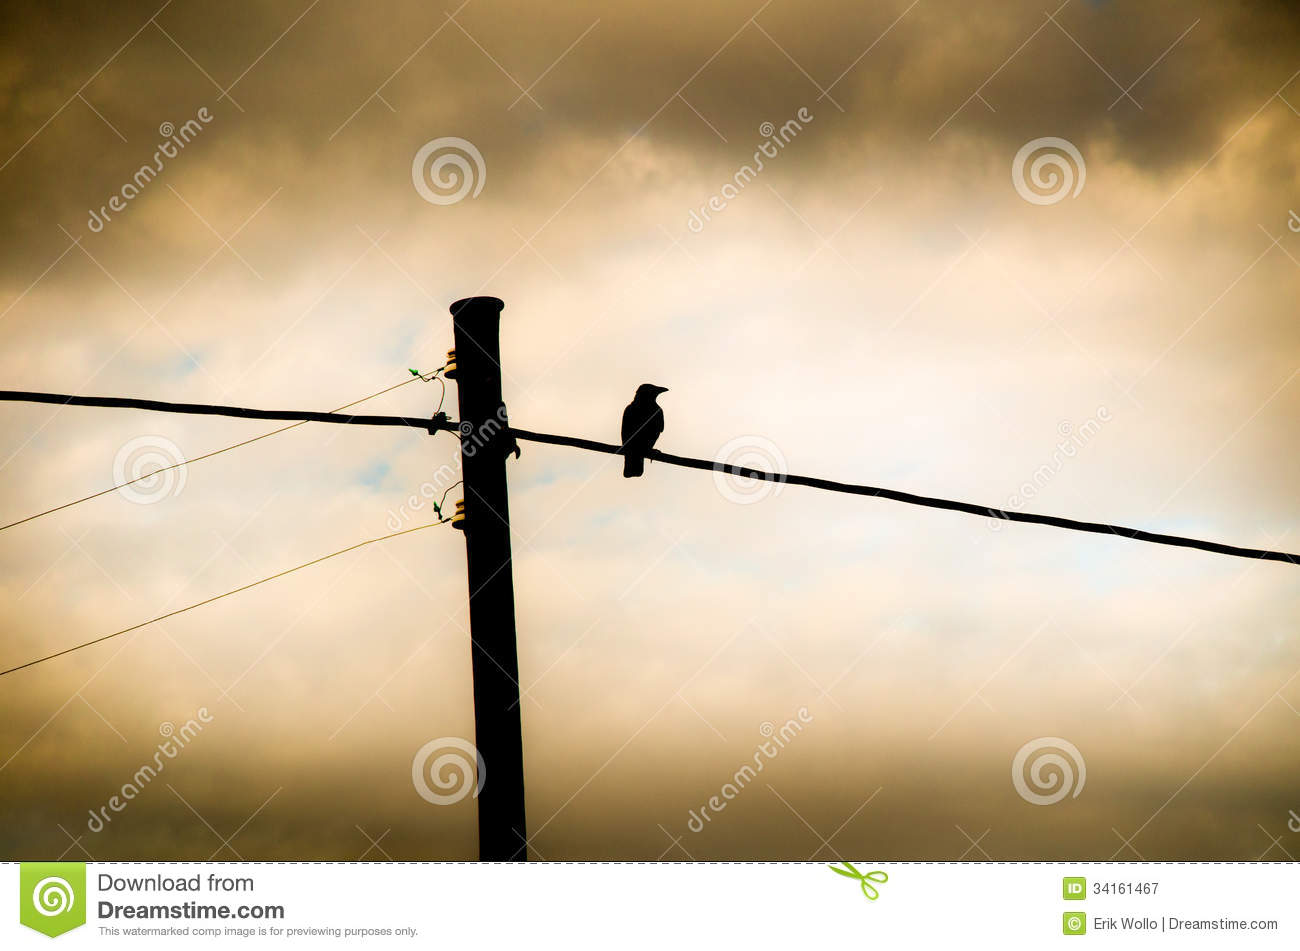 Crow Sitting On A Power Line Royalty Free Stock Photography.